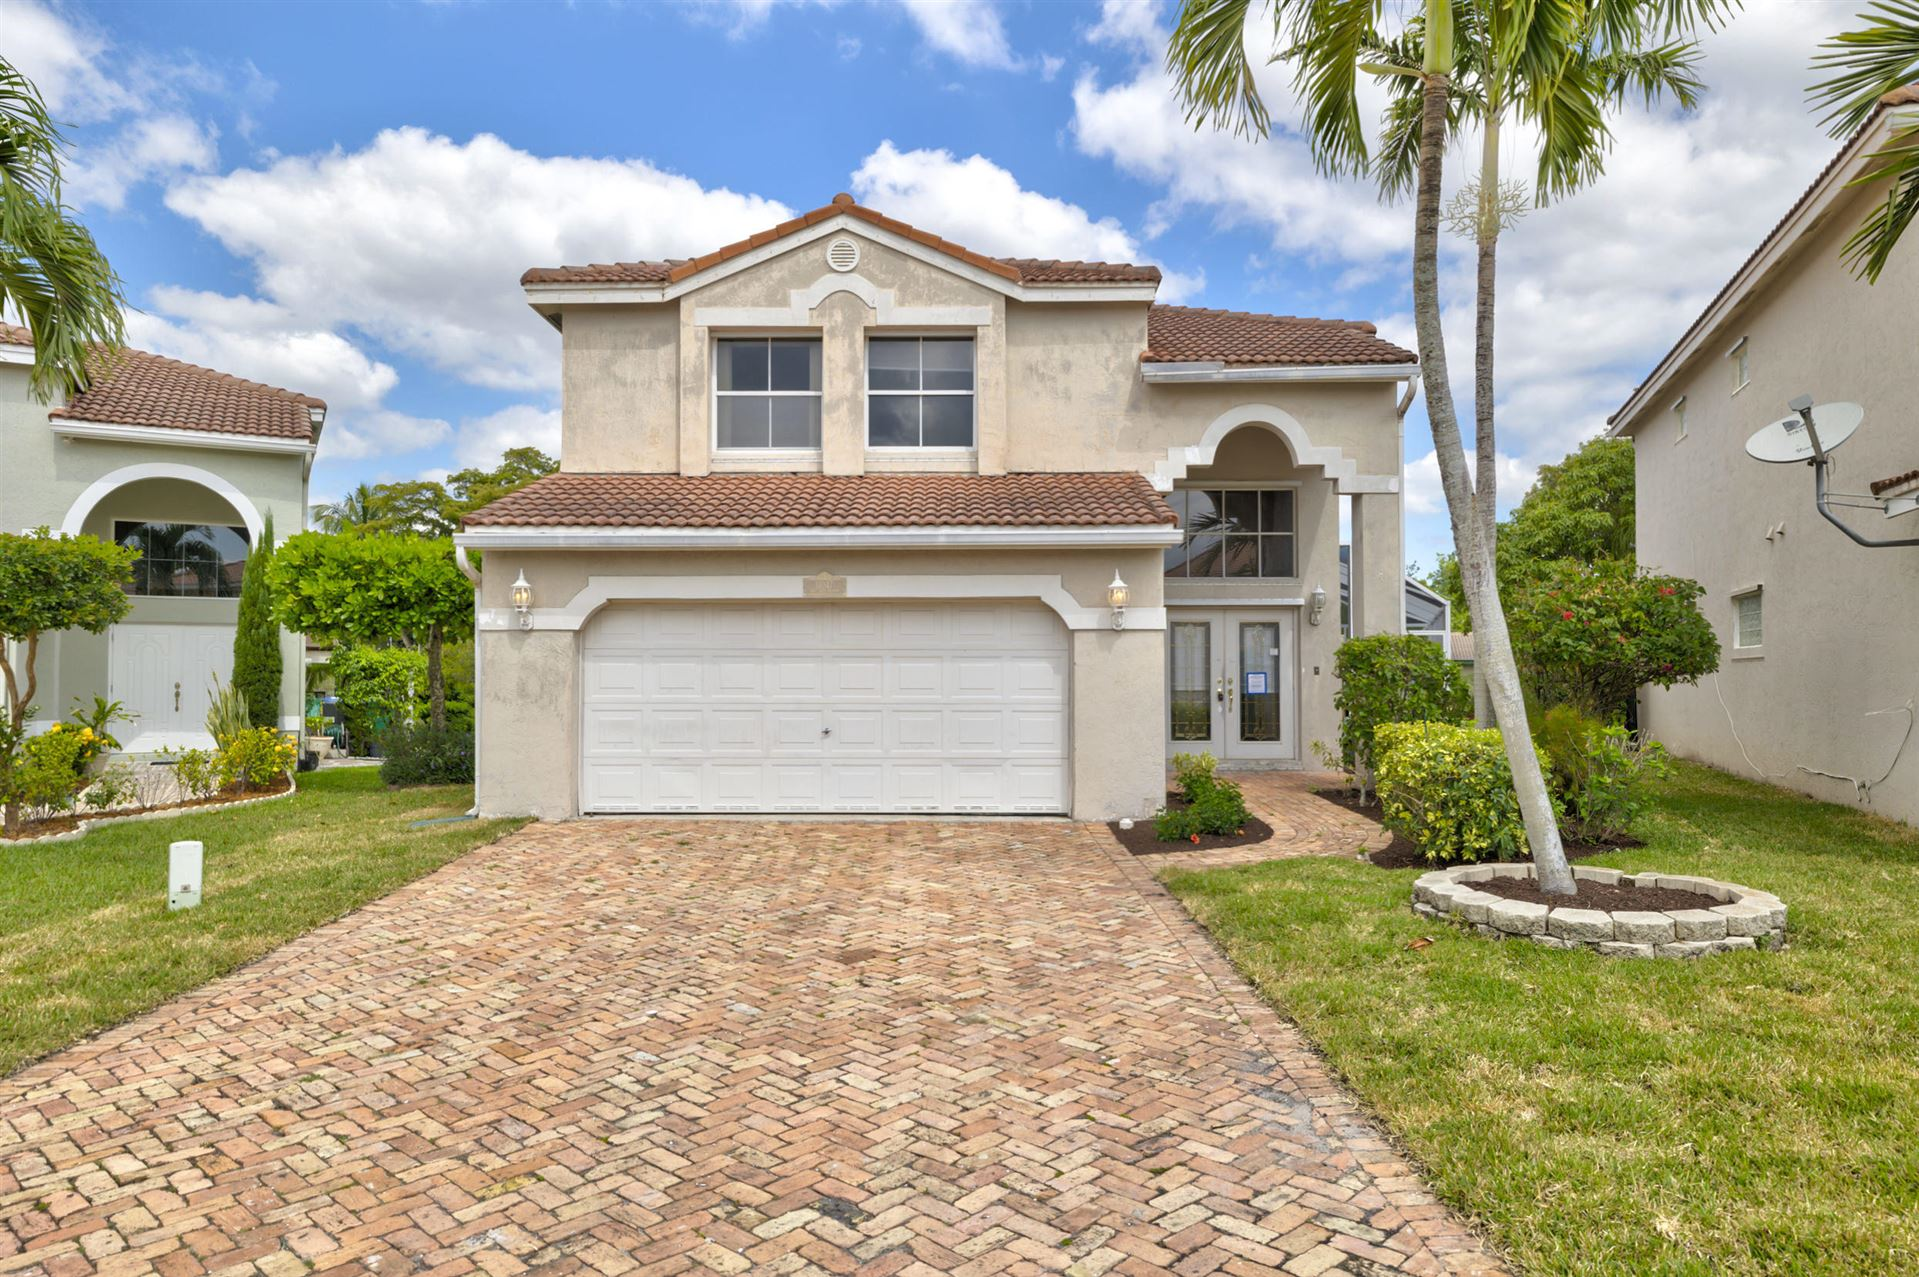 11047 NW 34th Manor, Coral Springs, FL 33065 - MLS#: RX-10702354